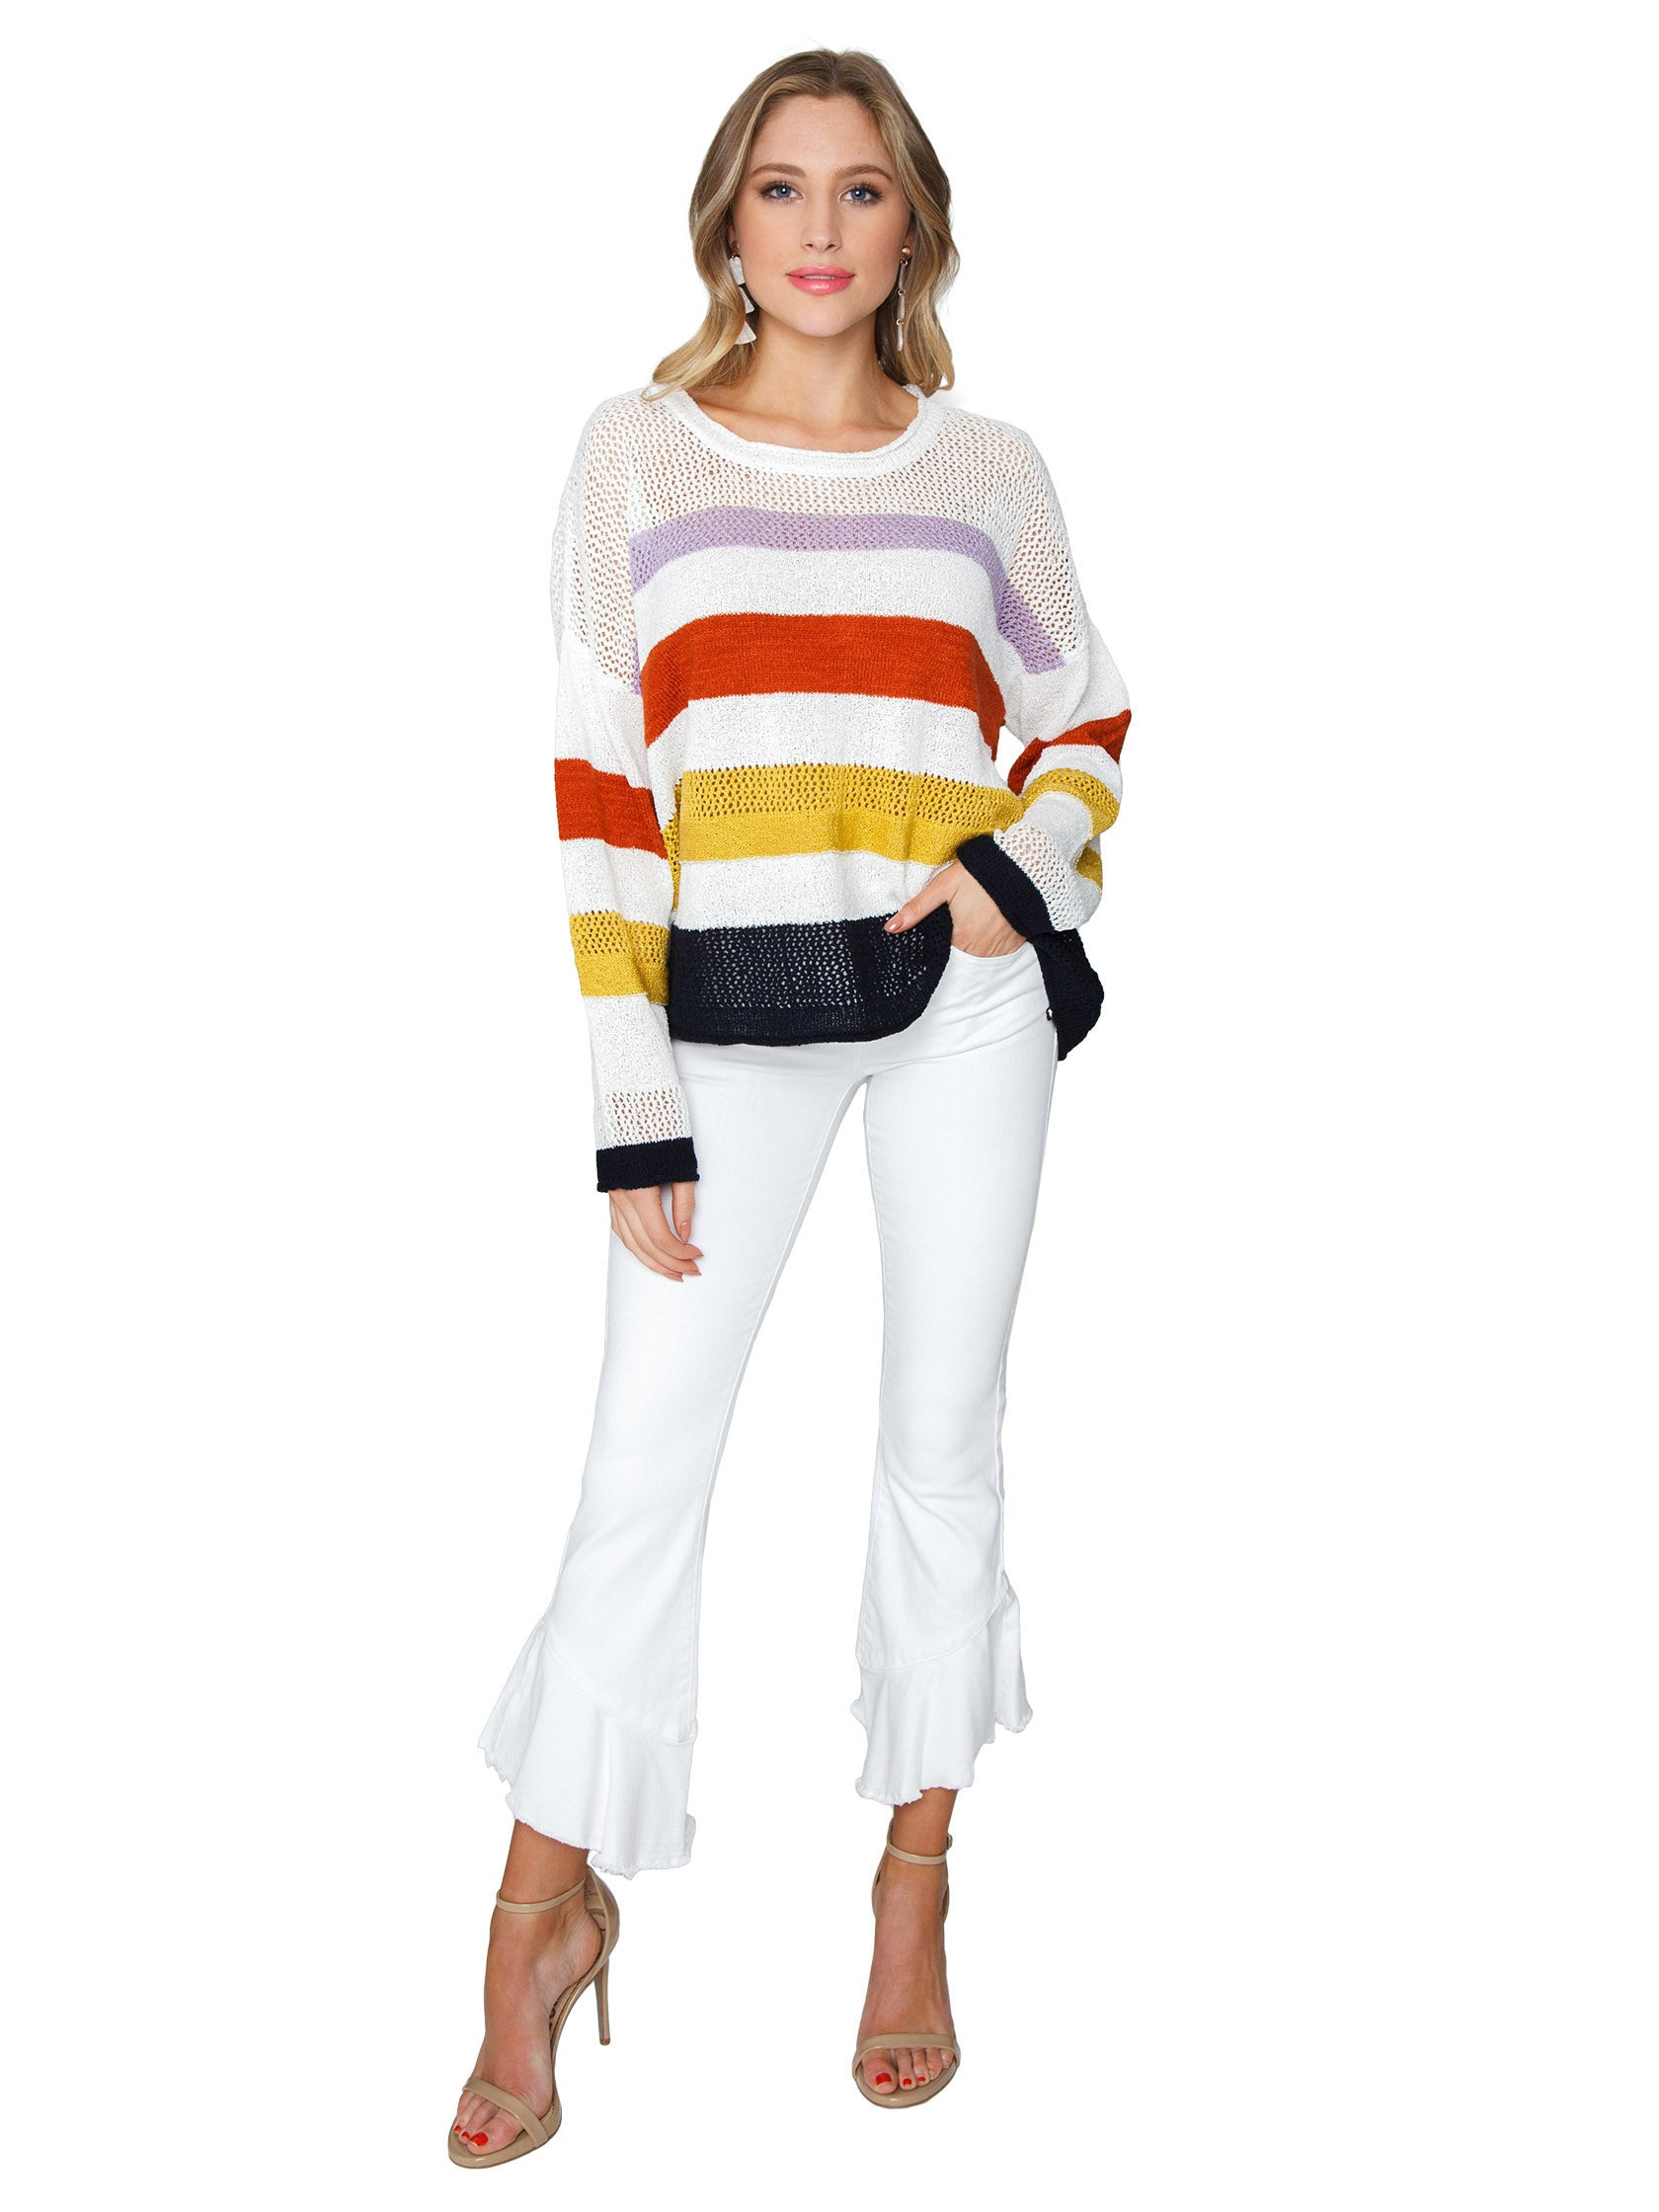 Girl wearing a sweater rental from FashionPass called Lightweight Stripe Sweater